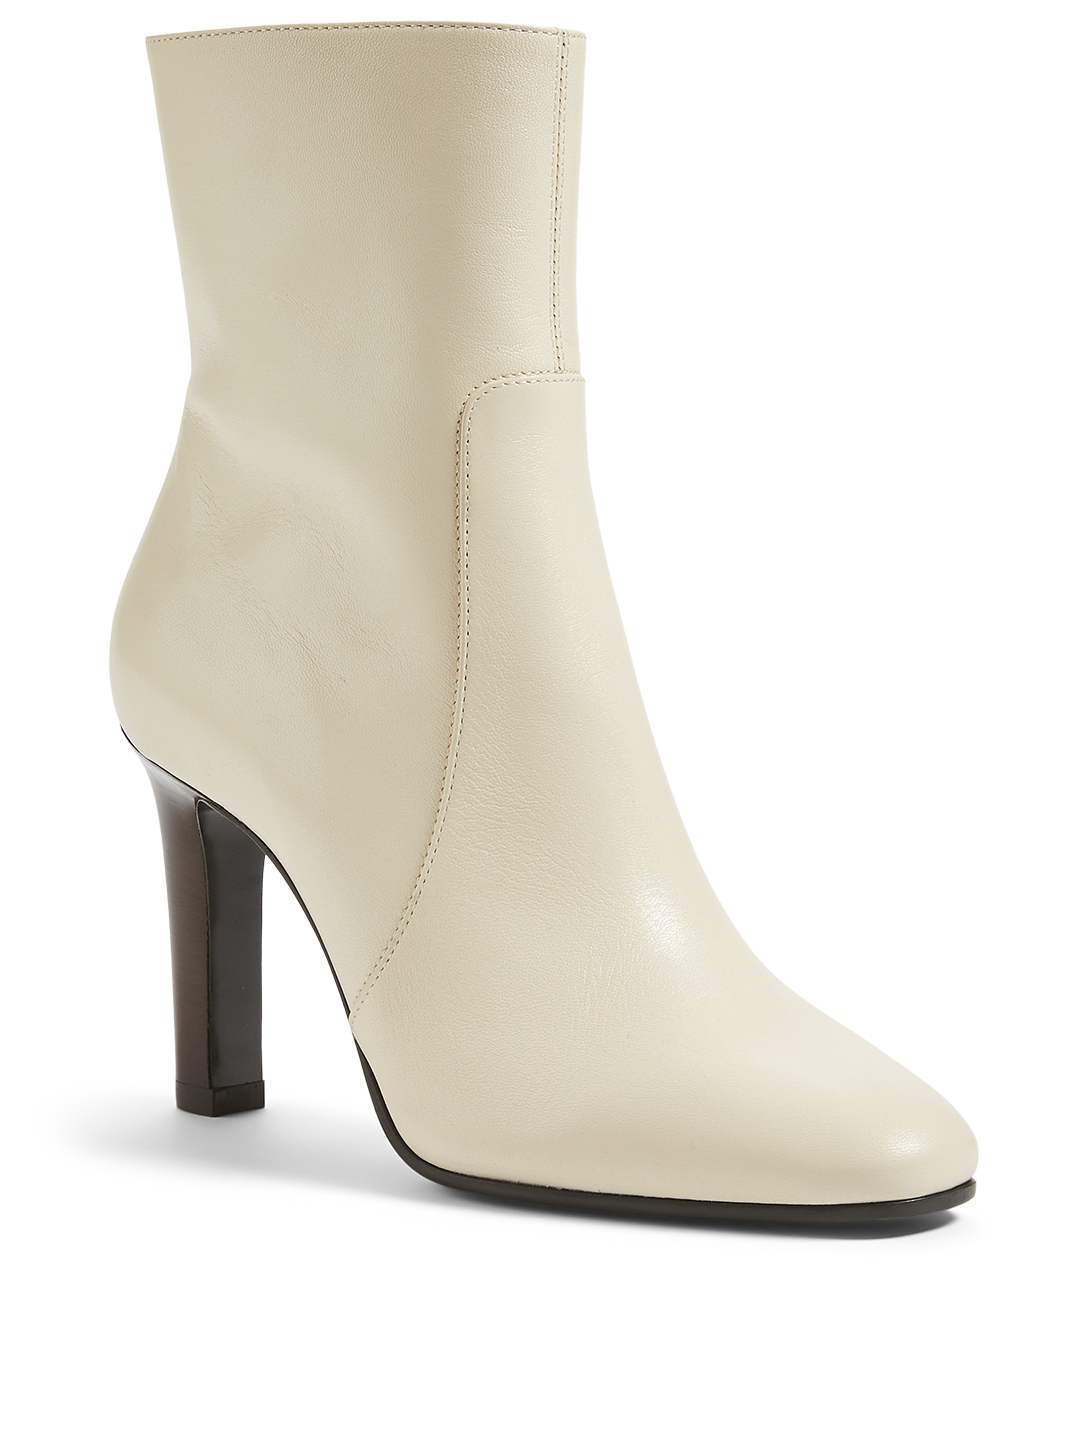 SAINT LAURENT Jane 90 Leather Heeled Ankle Boots Women's White